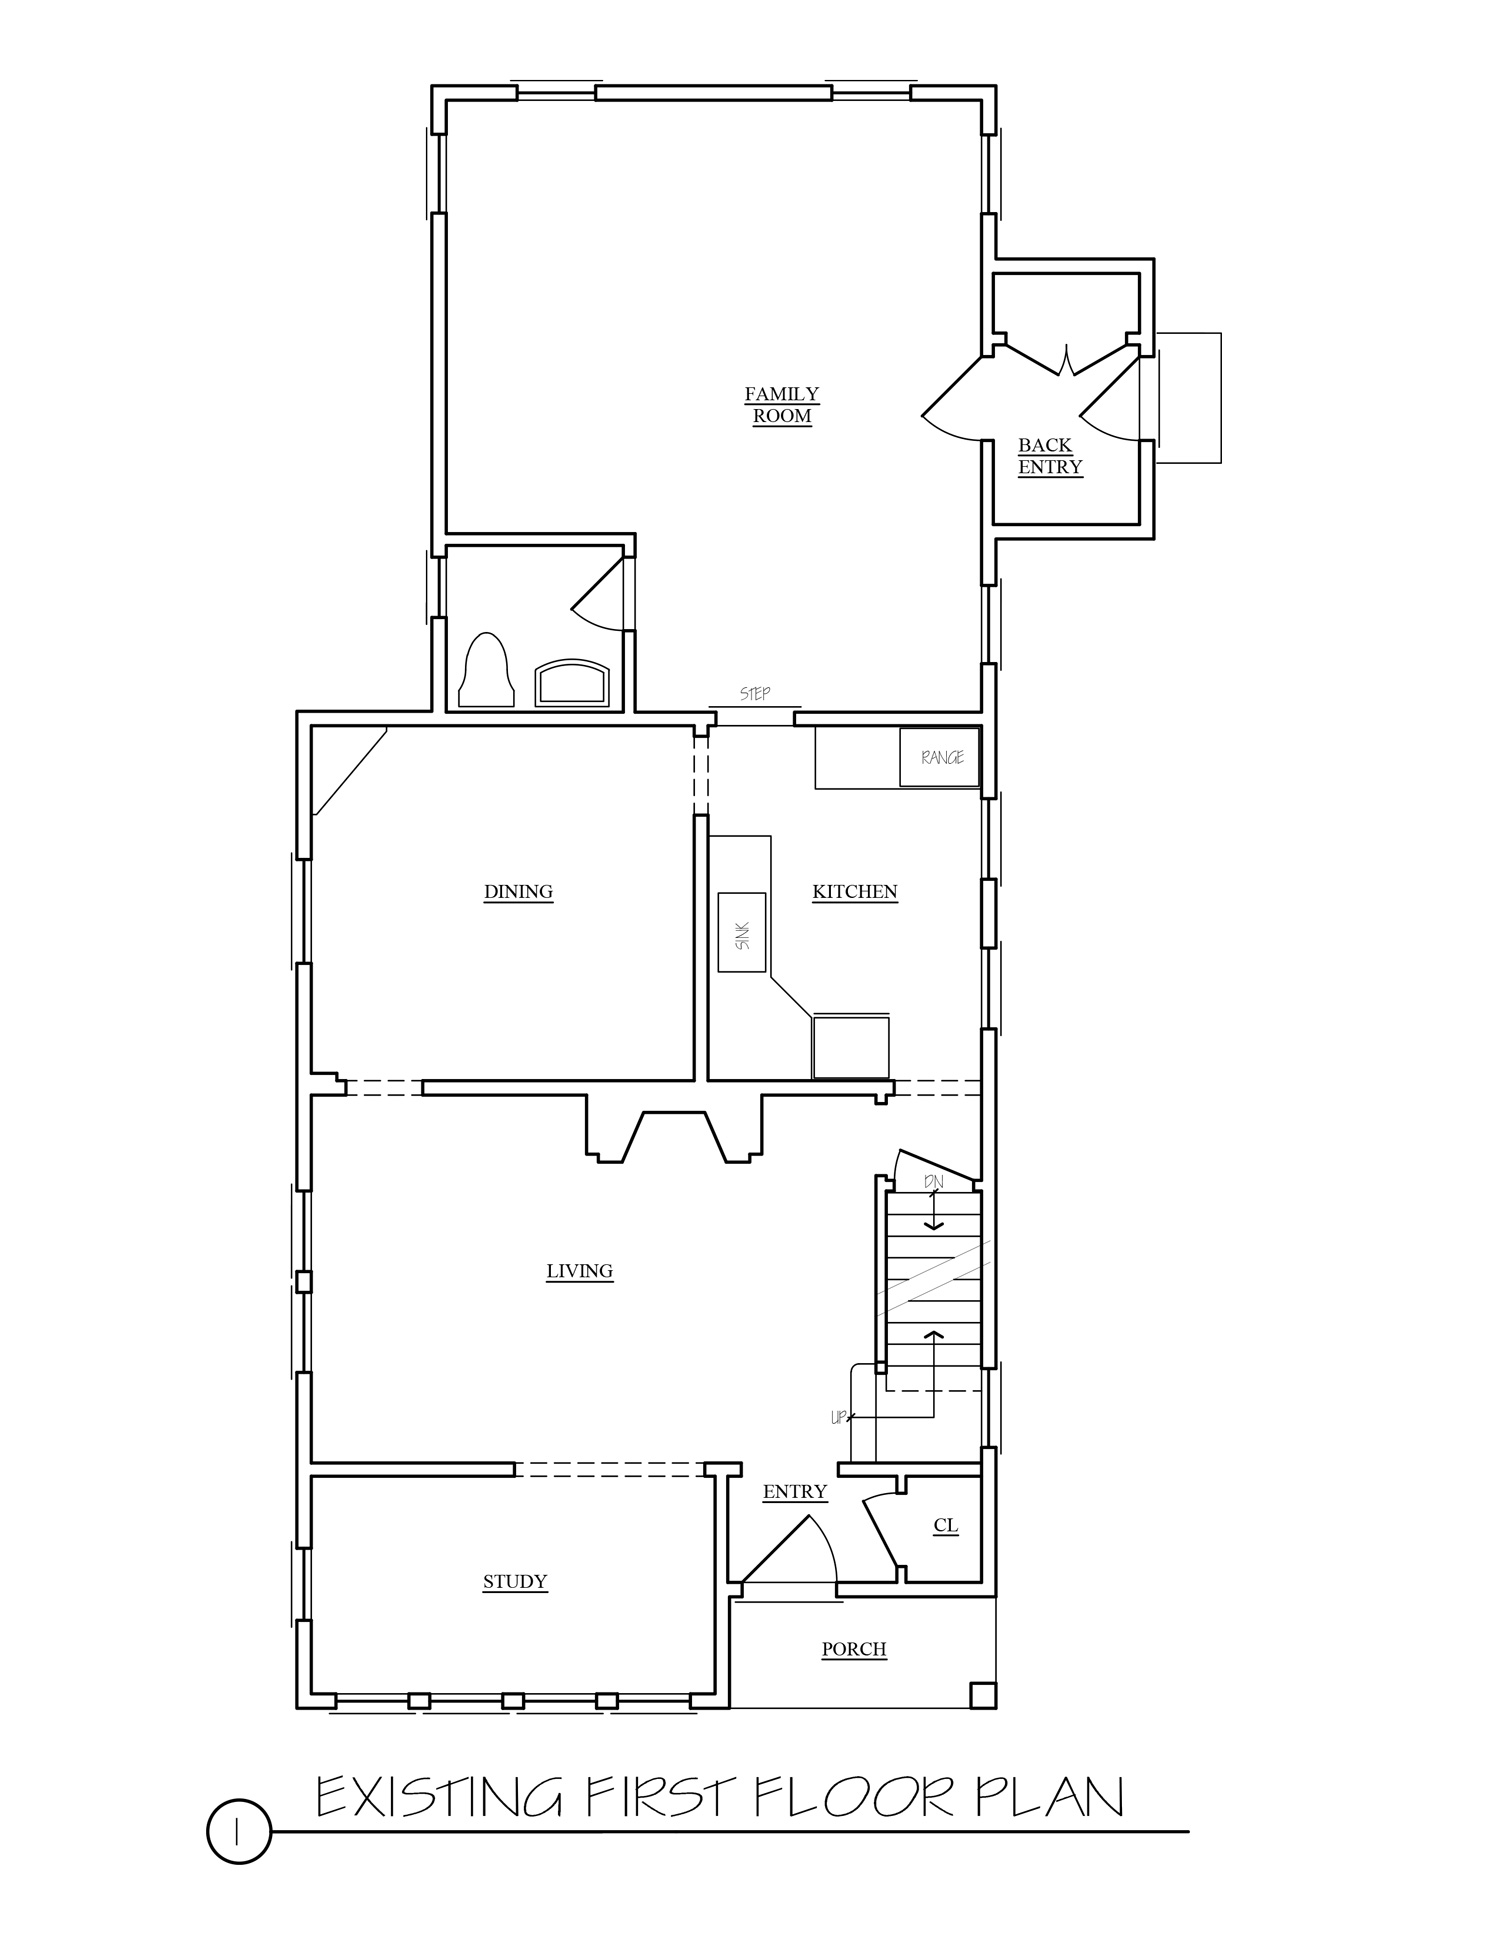 2_Existing-First-Floor-Plan.jpg